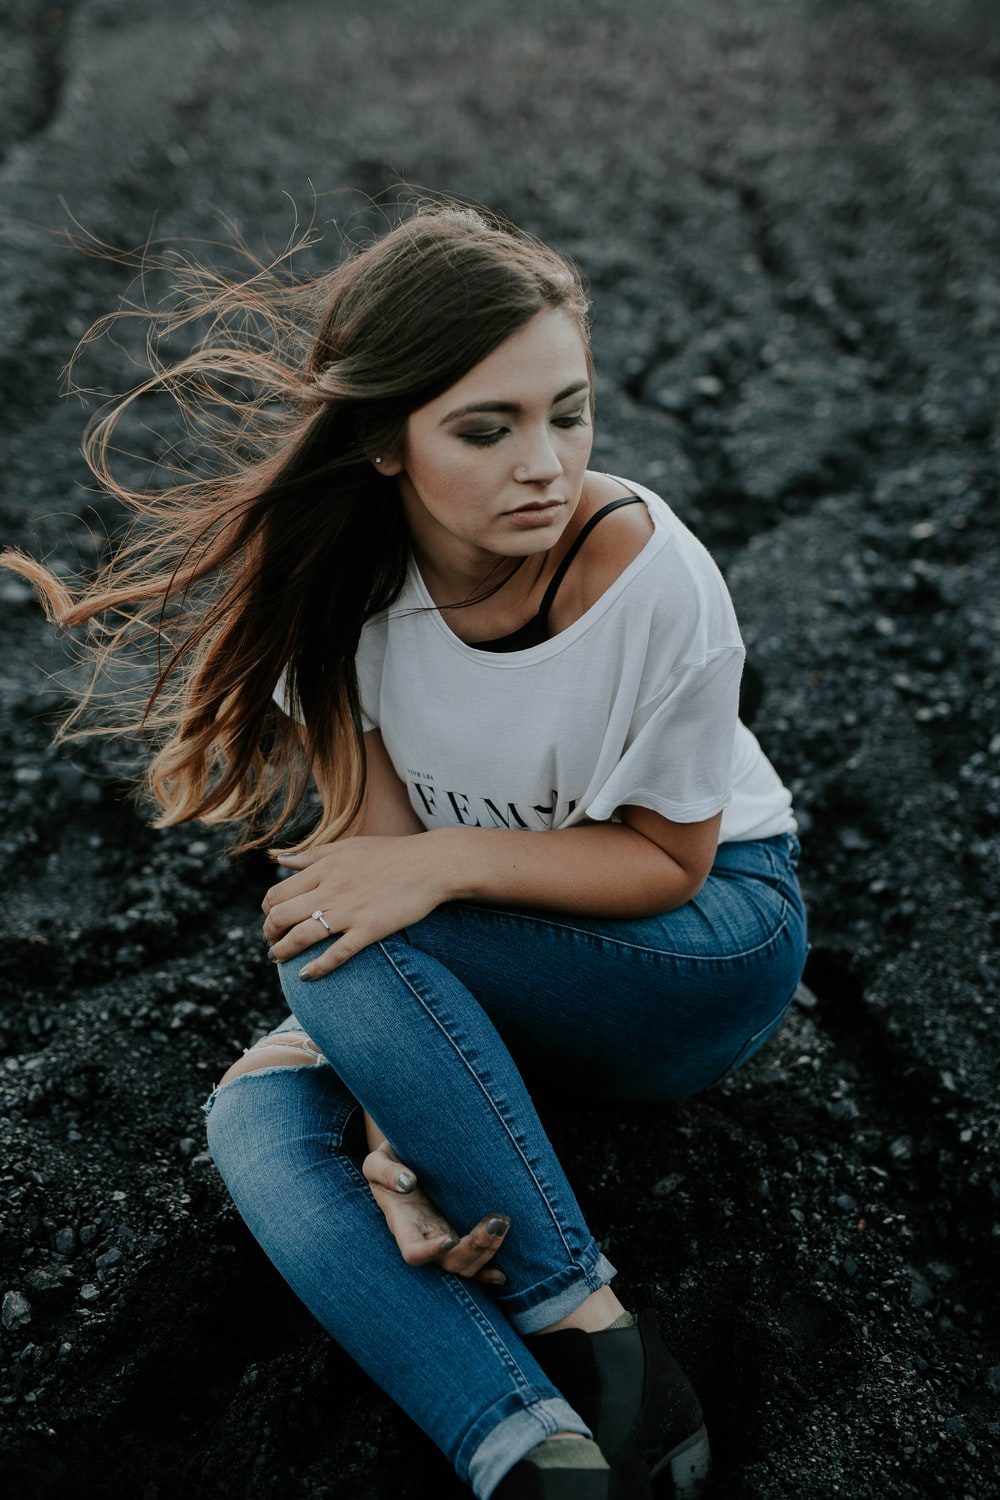 woman wearing scoop-neck shirt and distressed jeans sitting on ground while holding knee